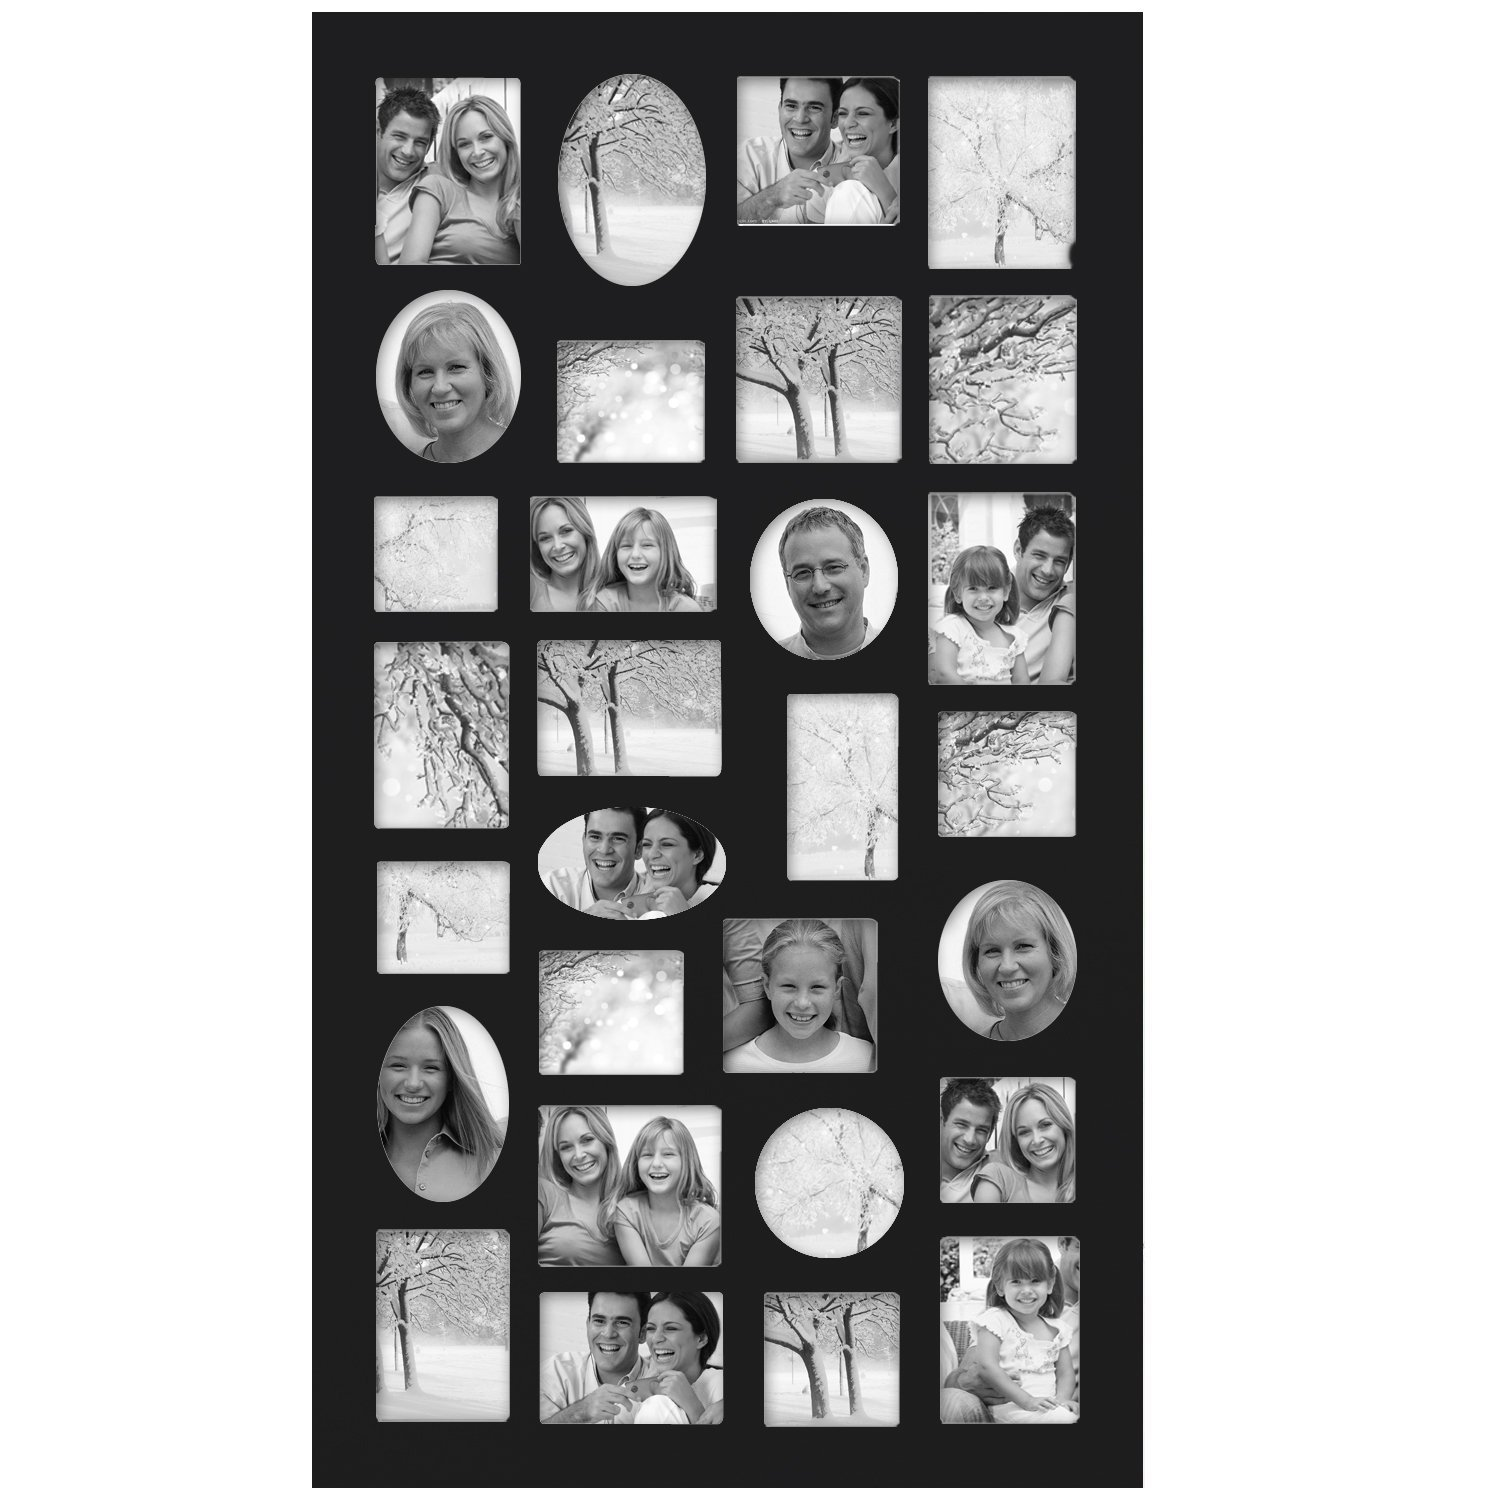 Amazon adeco pf9105 decorative black wood wall hanging amazon adeco pf9105 decorative black wood wall hanging collage picture photo frame 29 openings various sizes between 325x275 and 45x4 jeuxipadfo Gallery